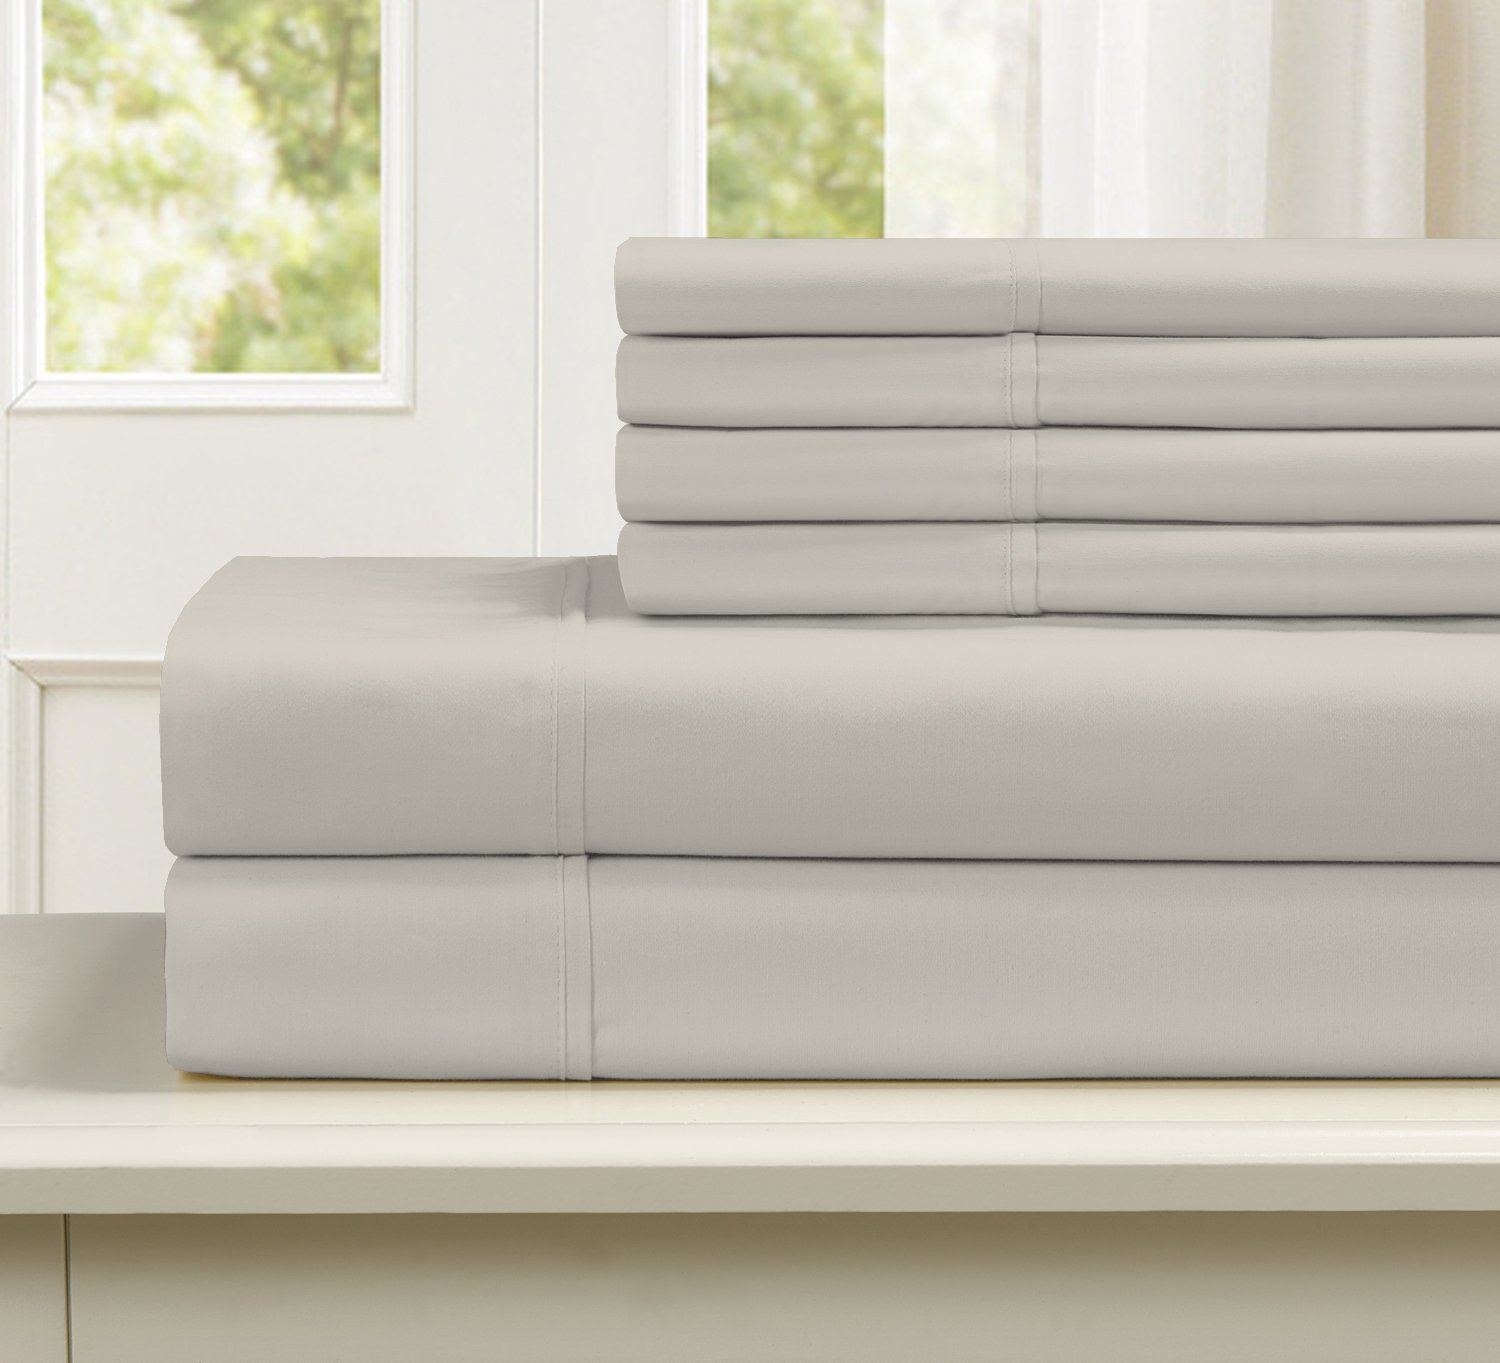 Blissful Living 800 Thread Count Cotton Rich 4-6 Piece Sheet Set - INCLUDES EXTRA PILLOWCASE(S)! Super Soft, Hotel Quality Luxury (Queen, Tan)